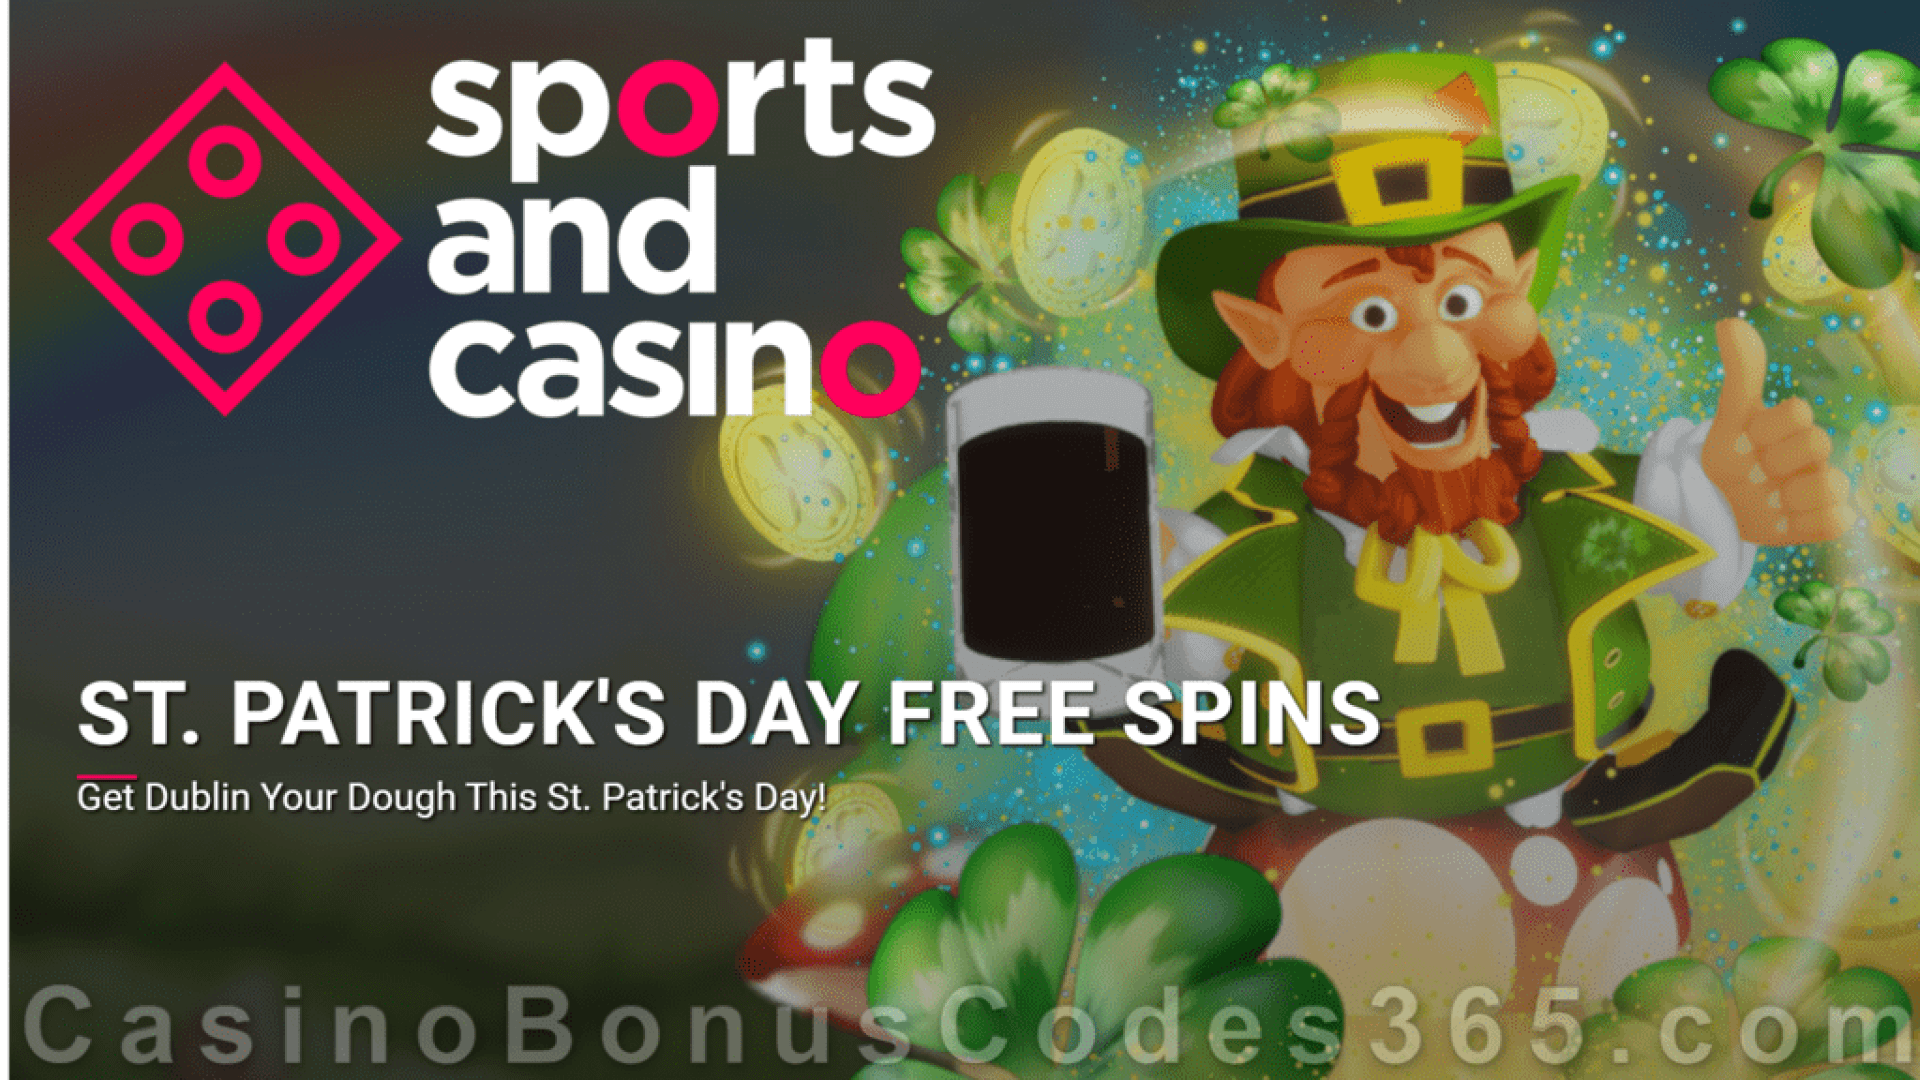 Sports and Casino 35 FREE Spins on Rival Gaming Dublin your Dough St. Patrick's Day Special Offer